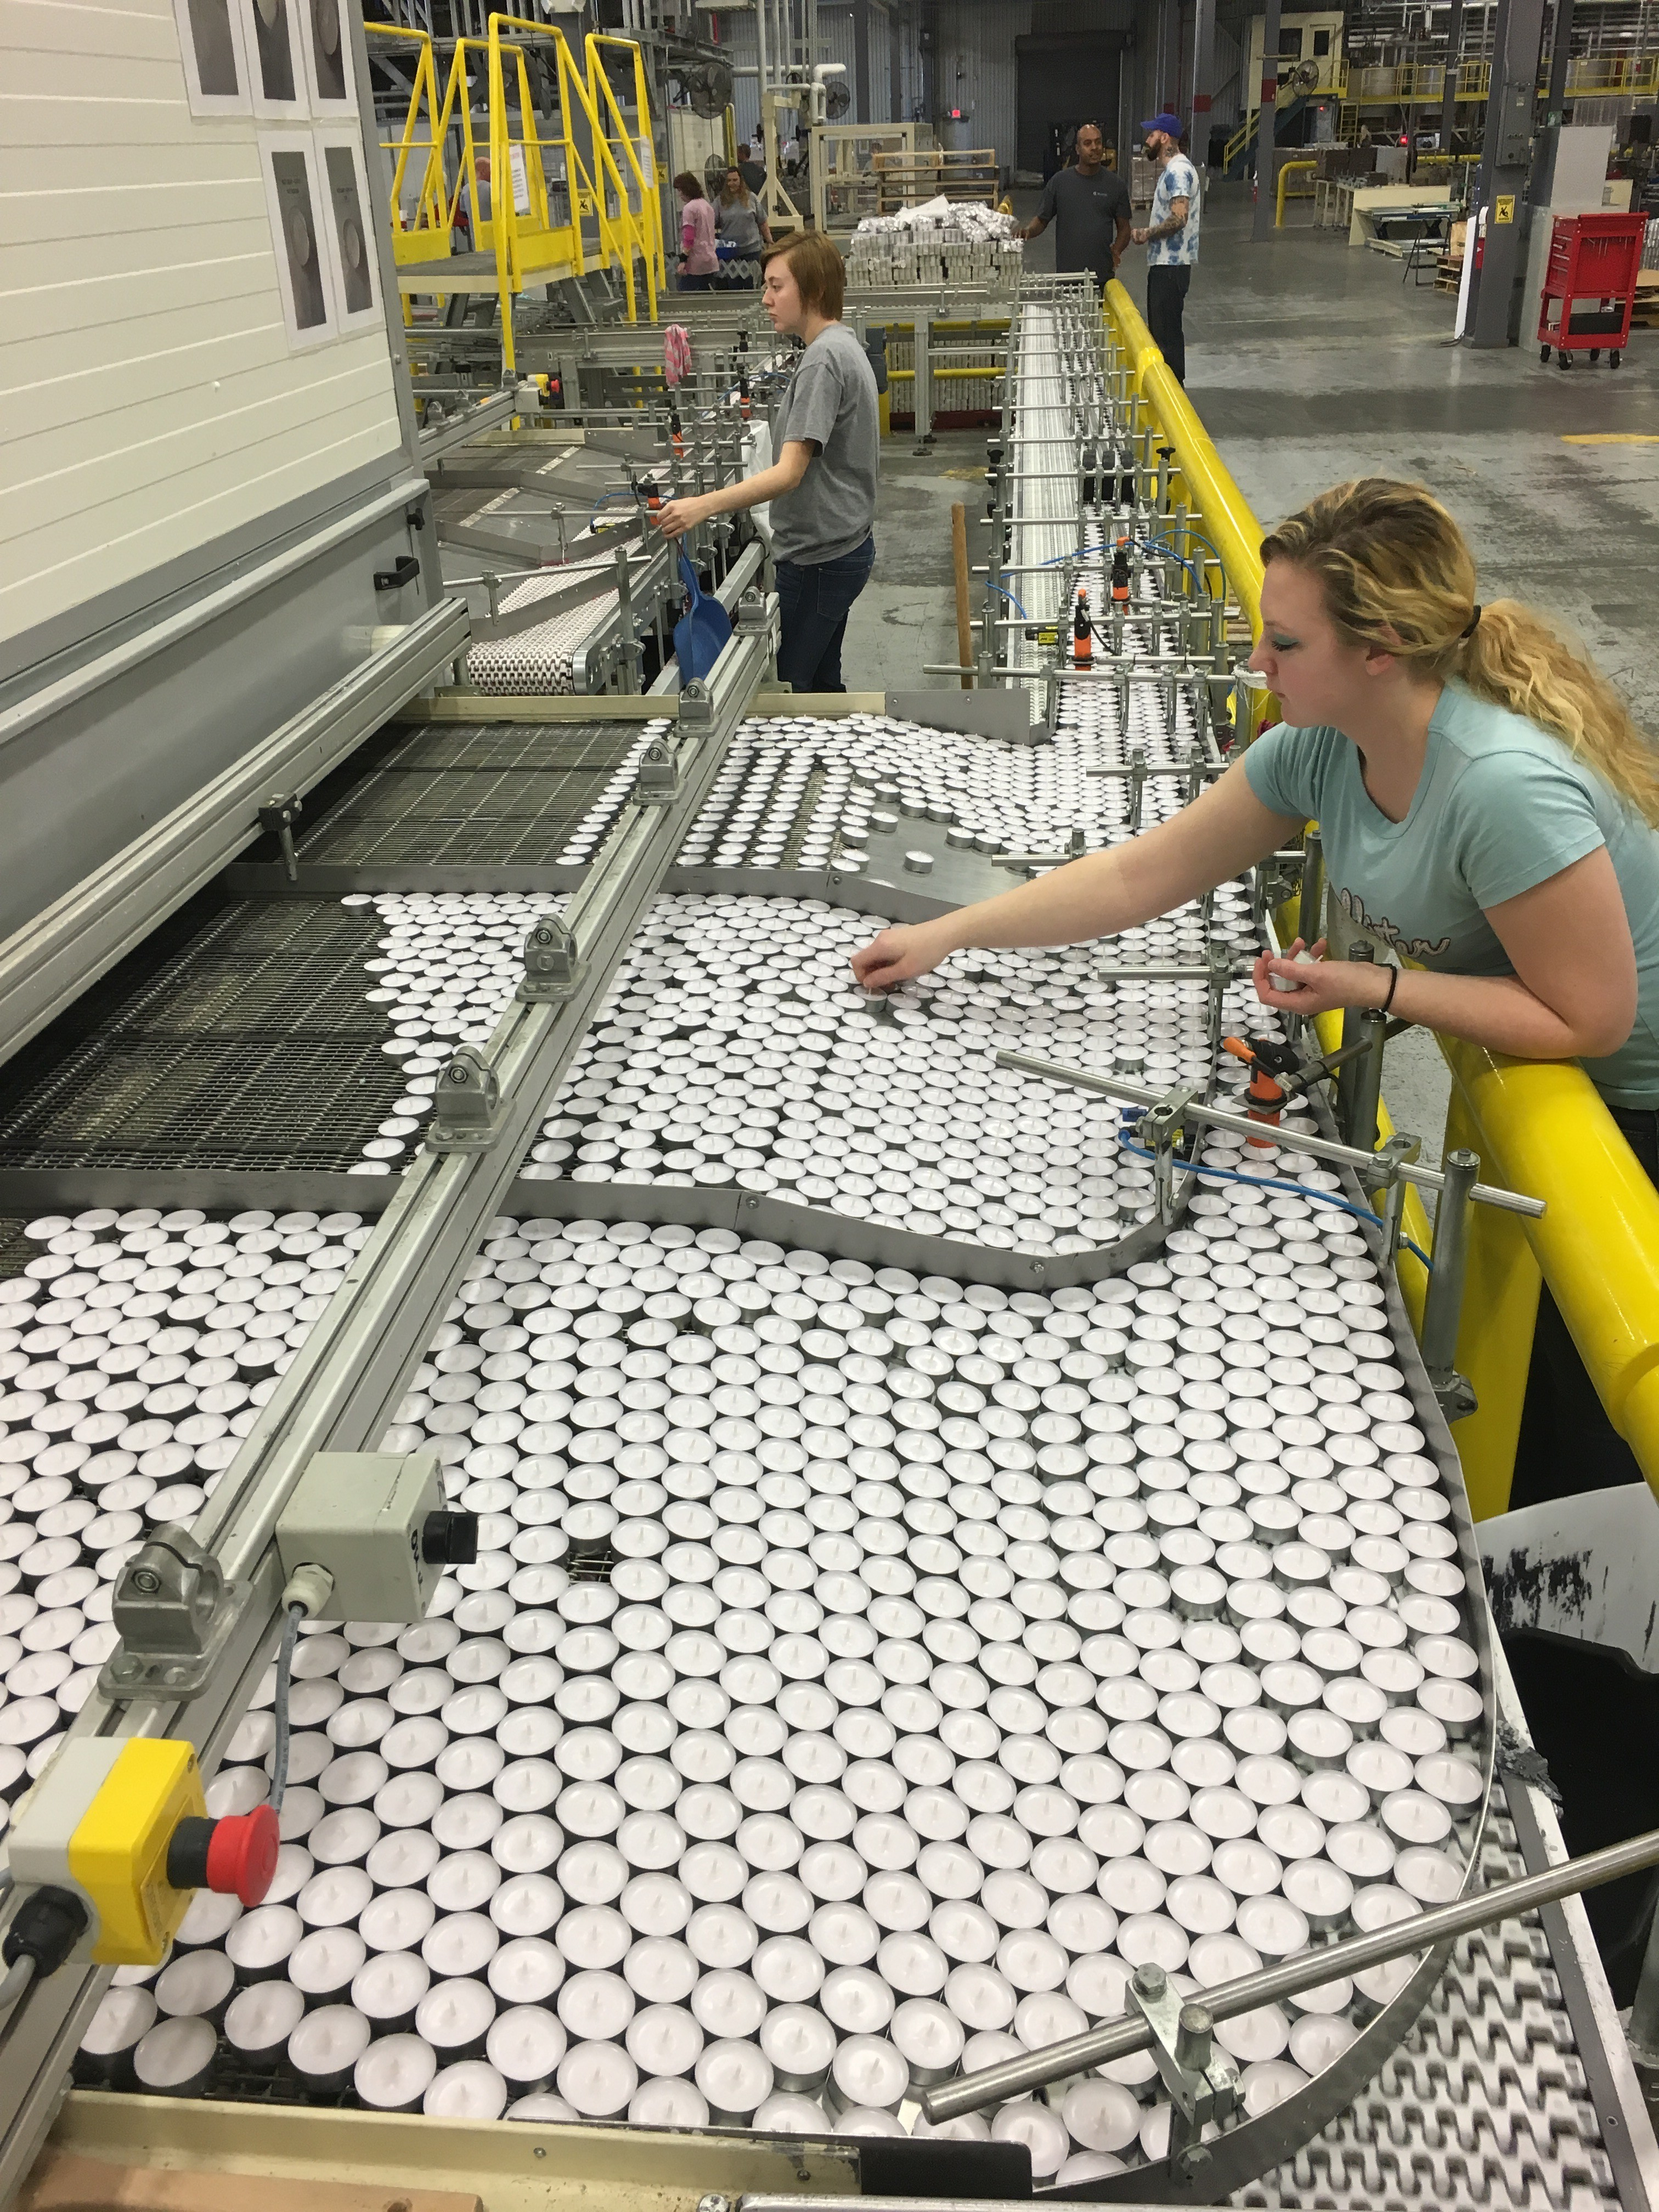 Worker in a Korona Candles factory